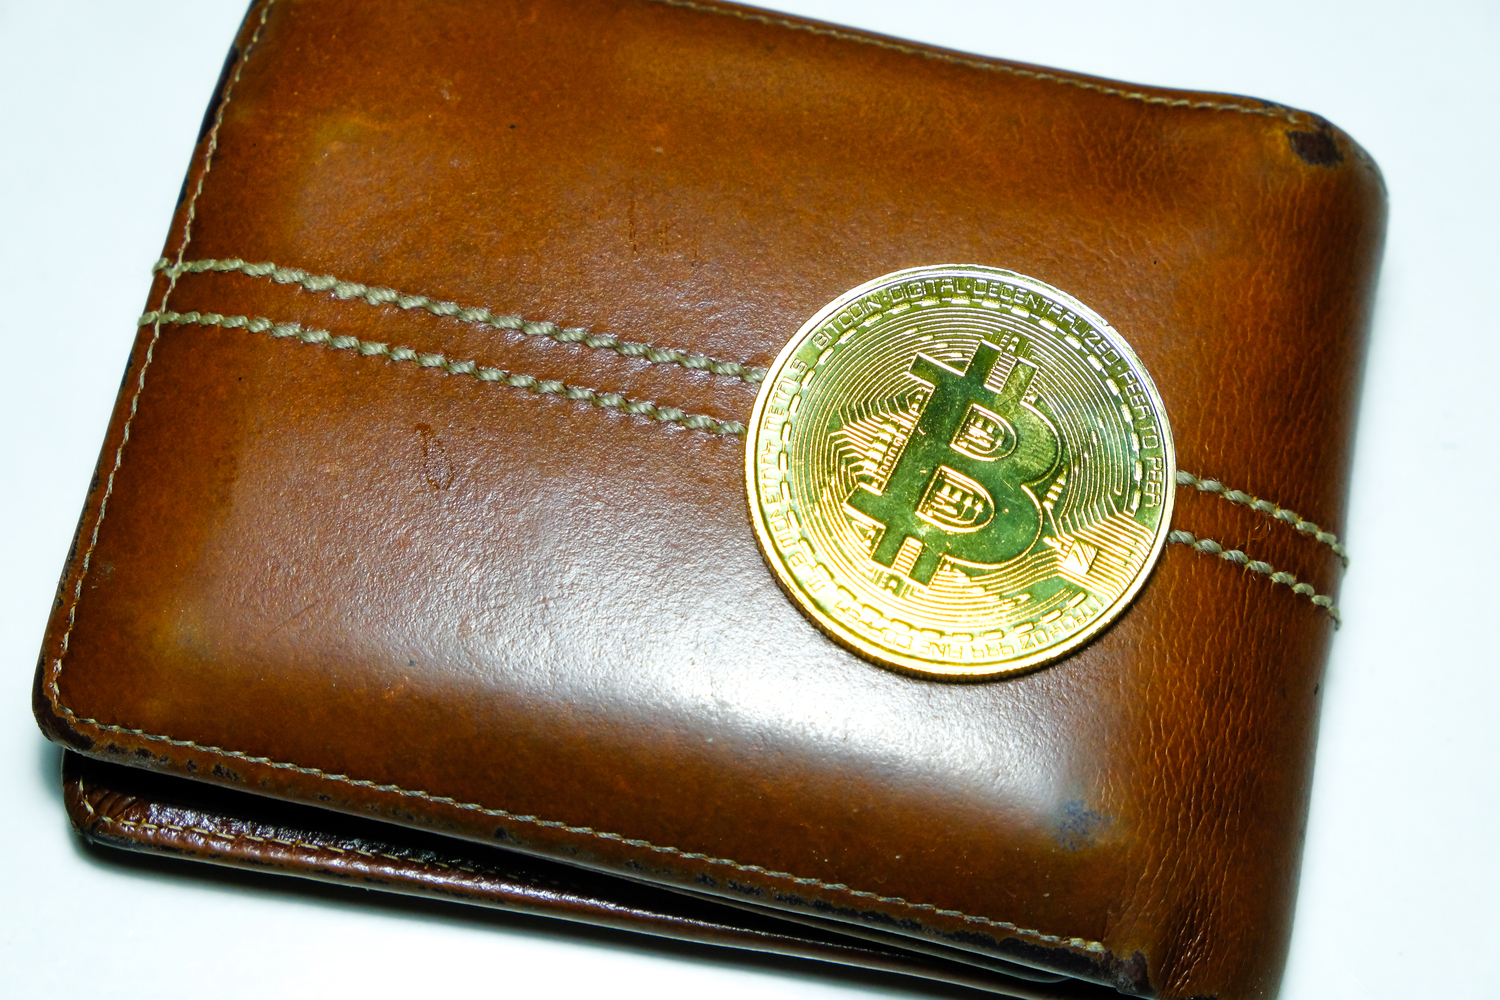 Samourai Wallet Stops Showing Fiat Value of Bitcoin Balances - CoinDesk